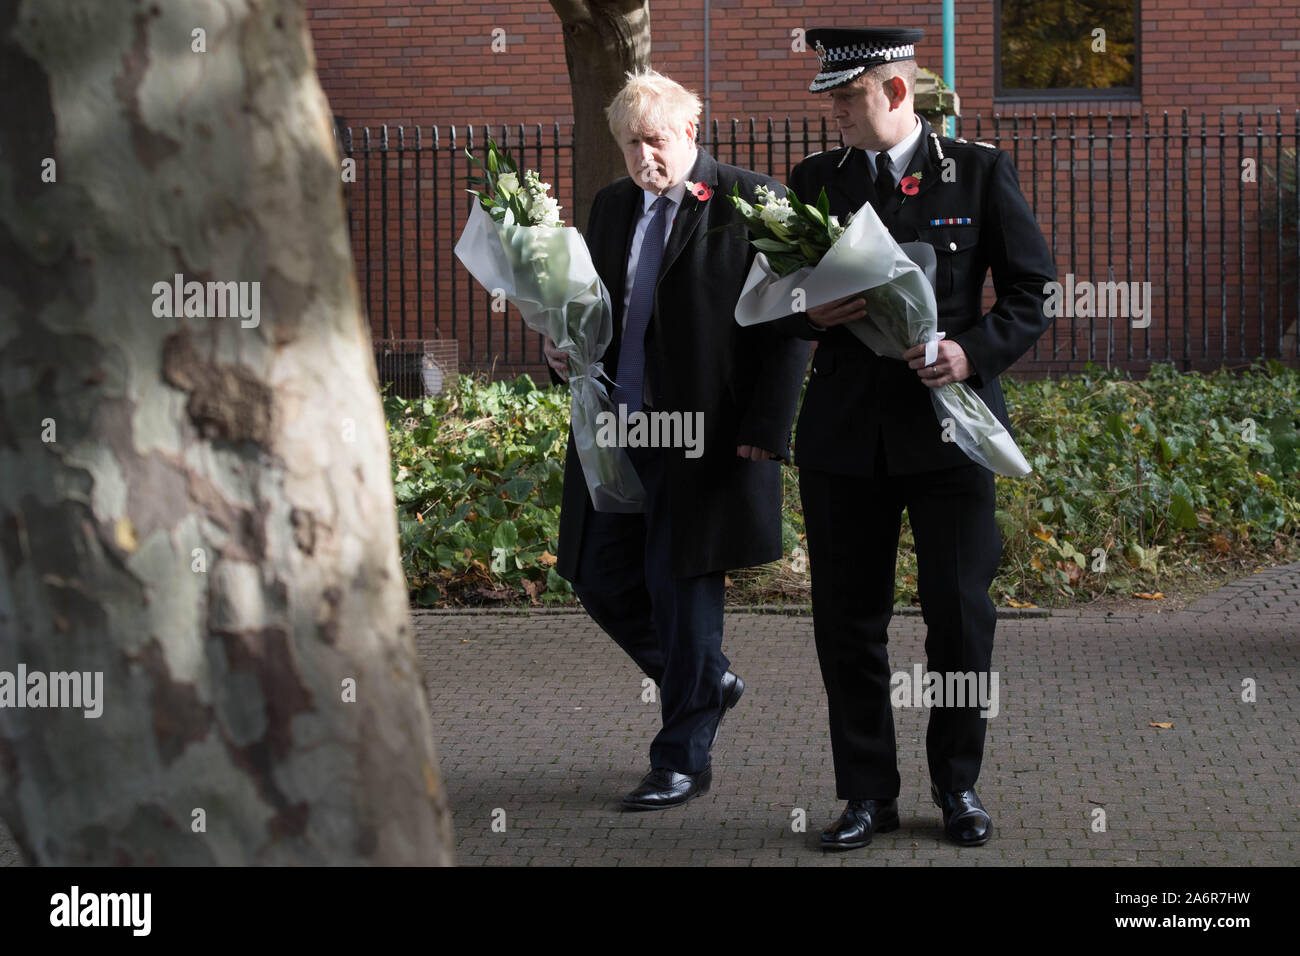 Prime Minister Boris Johnson walks with the Chief Constable of Essex Police, Ben-Julian Harrington, ahead of laying flowers during a visit to Thurrock Council Offices in Essex after the bodies of 39 people were found in a lorry container last week. Stock Photo